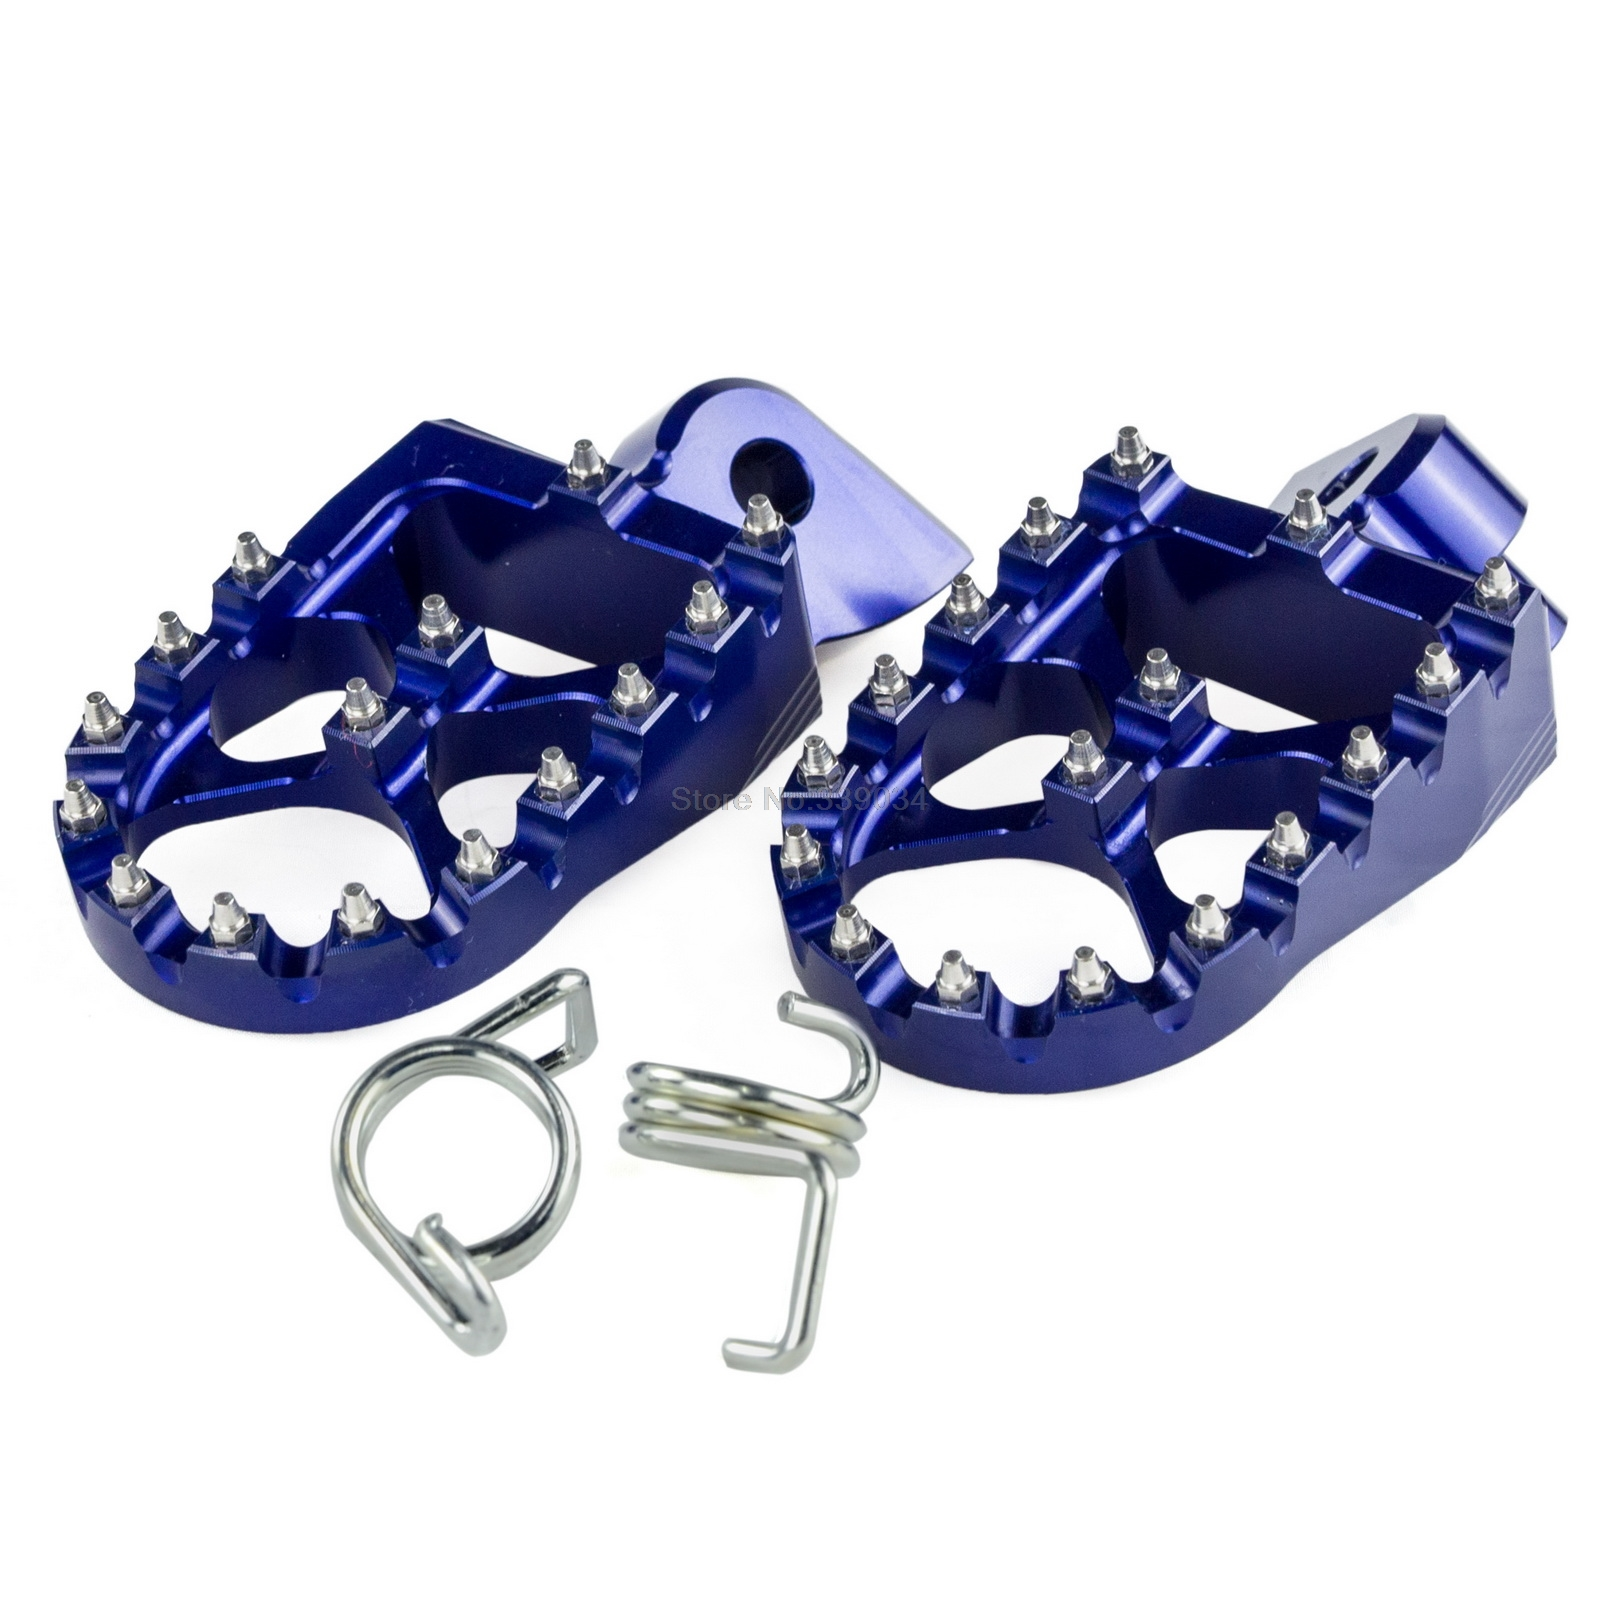 NICECNC 57mm Foot pegs Foot Rests For Yamaha YZ 85 YZ125 YZ250 YZ125X YZ250X YZ250F YZ250FX YZ450FX WR250F YZ WR 450F 250F 2018 yamaha 125 yz цепь